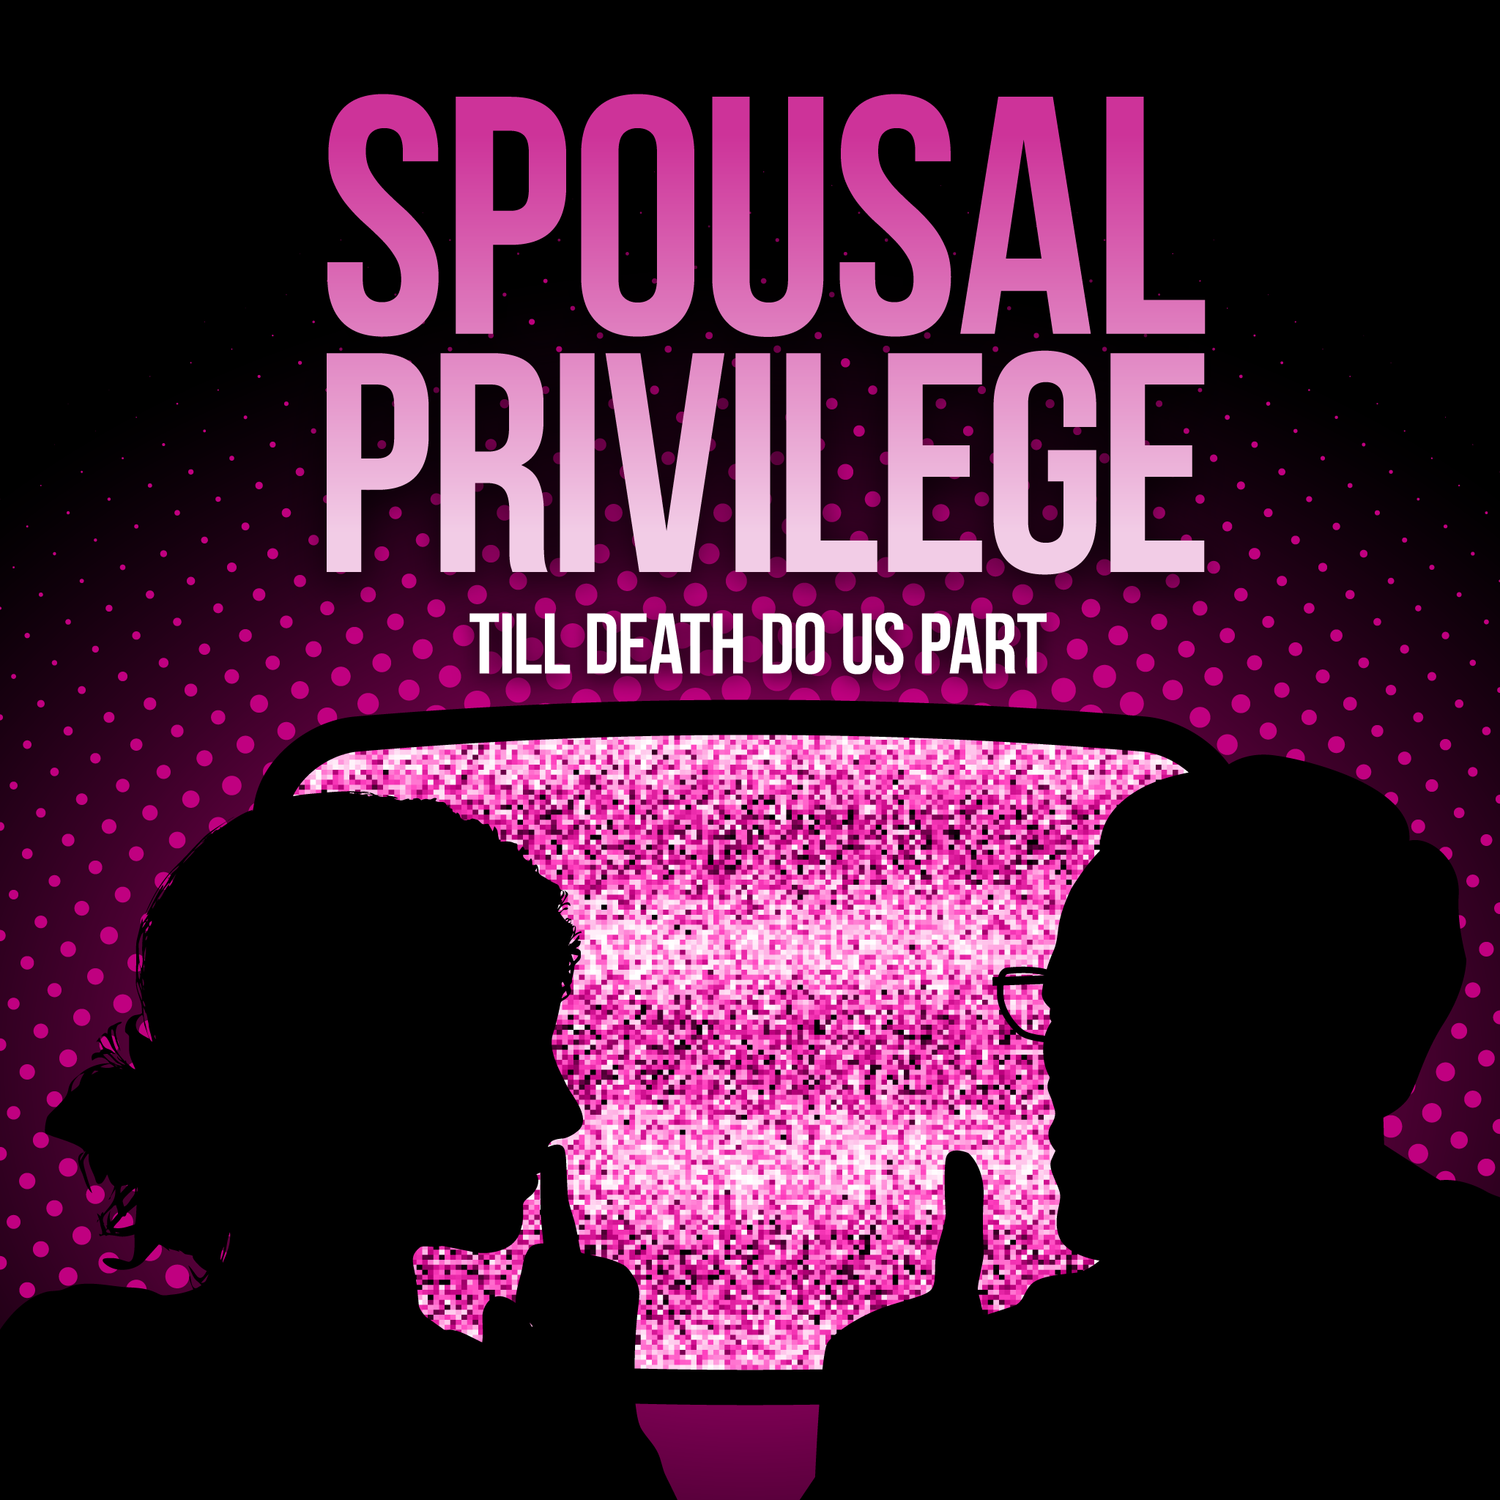 Spousal Privilege